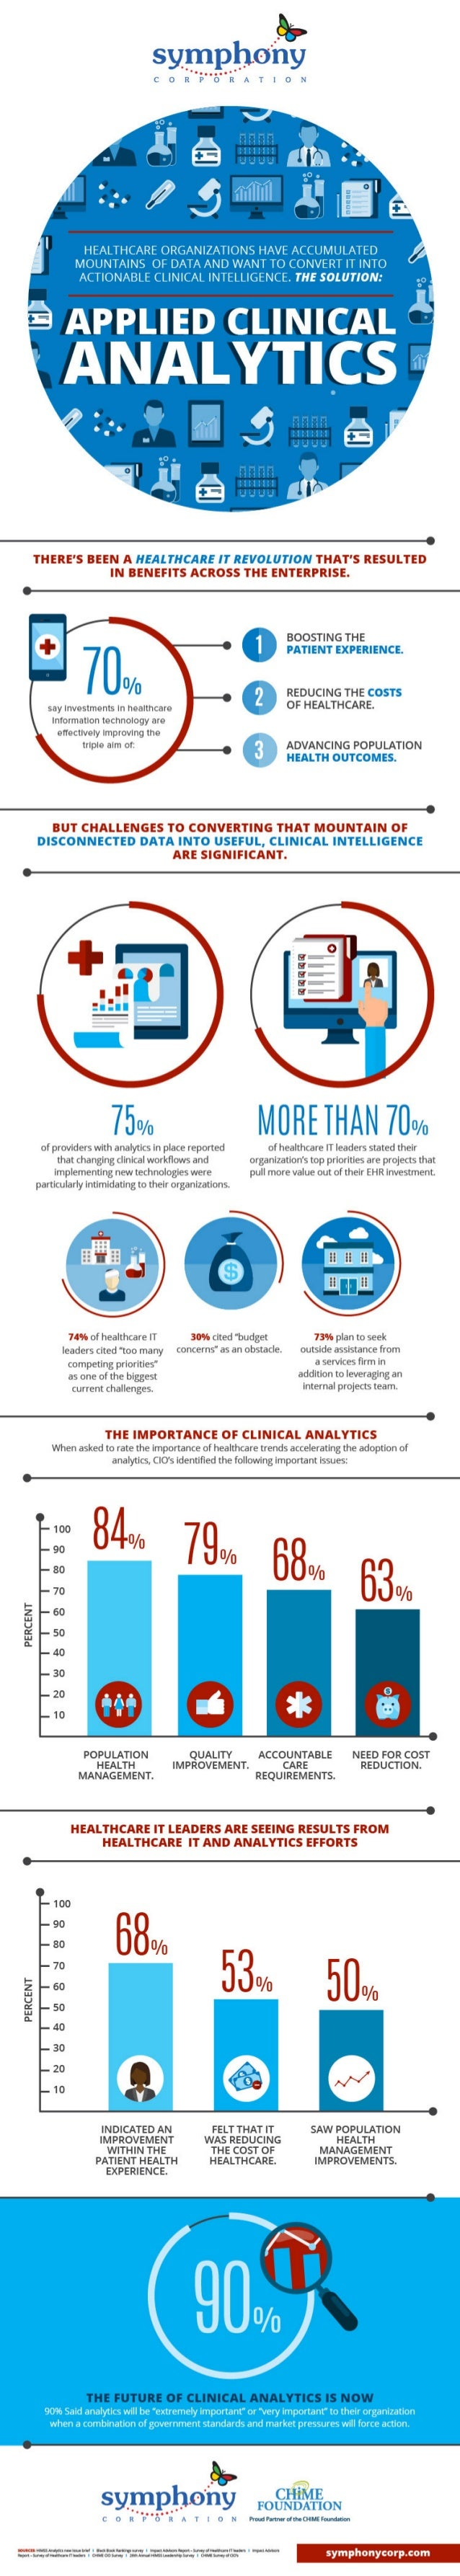 Applied Clinical Analytics - A Data First Approach to Clinical Intelligence